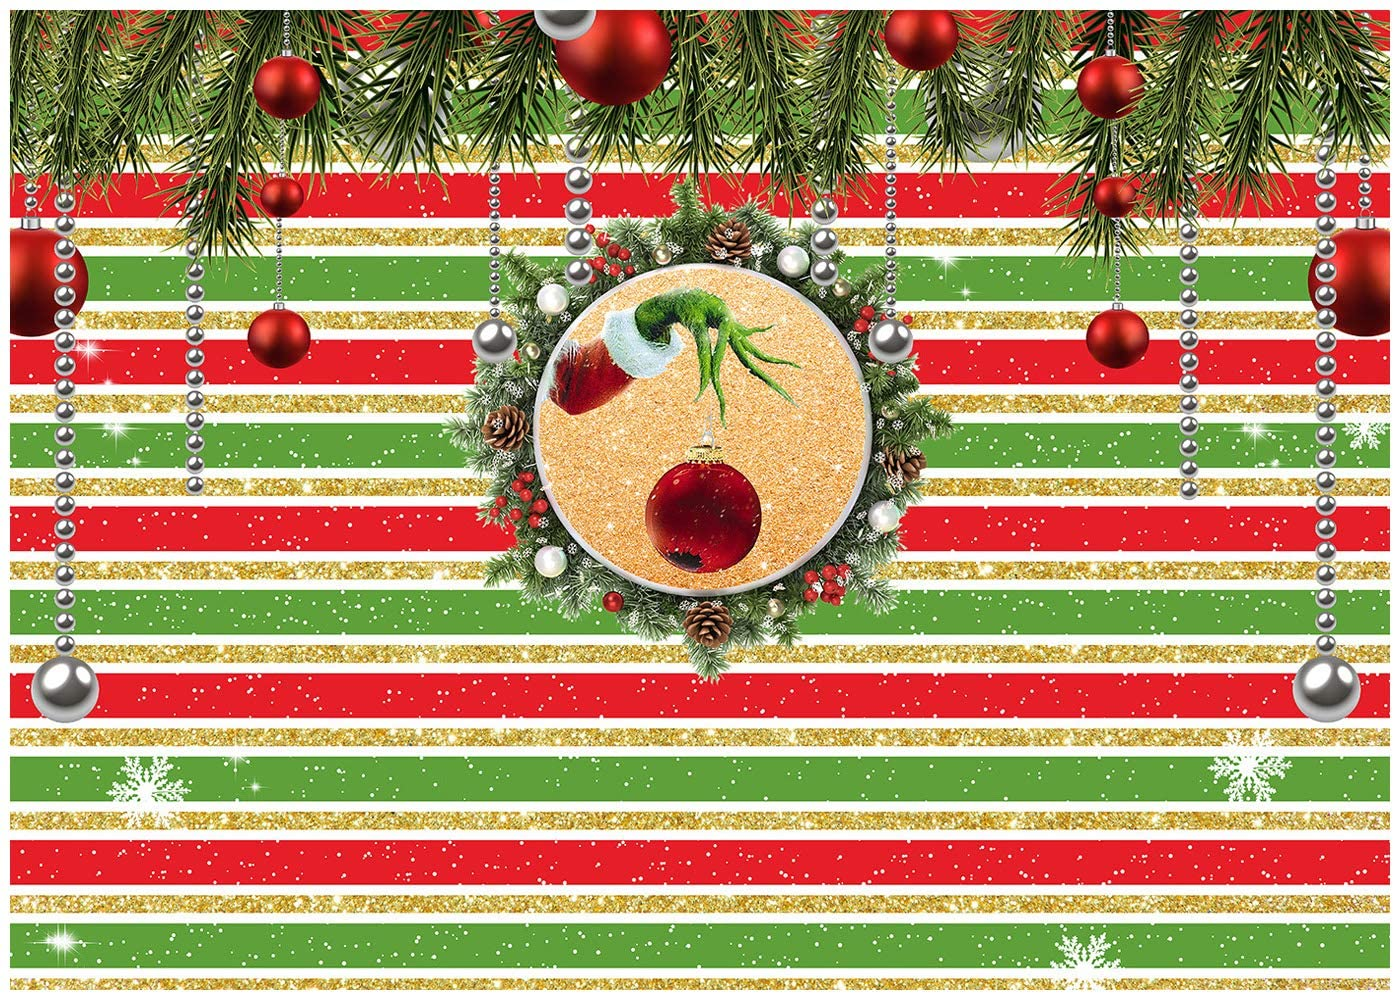 DULUDA Winter Christmas Garland Ball Backdrop Red Green Golden Stipes Snow Pine Branch Photography Background Merry Xmas Party Supply for Photoshoot Decoration Photo Booth Prop 7X5FT XM69A